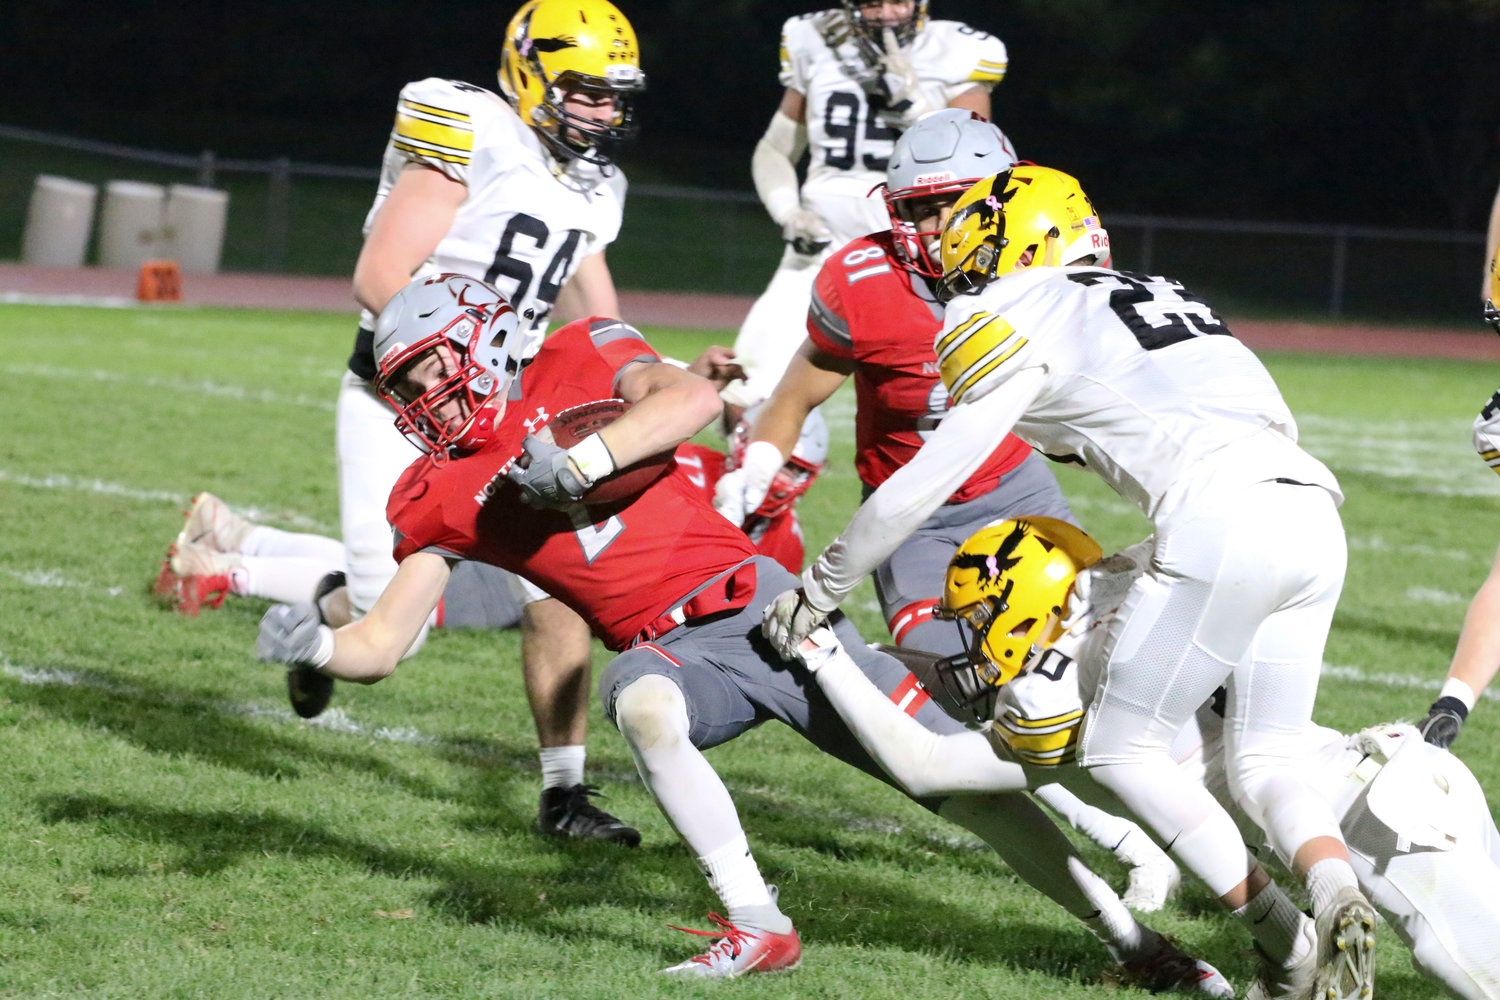 Jacob Porth rushed for 77 yards in 12 carries to pace the NS offense.